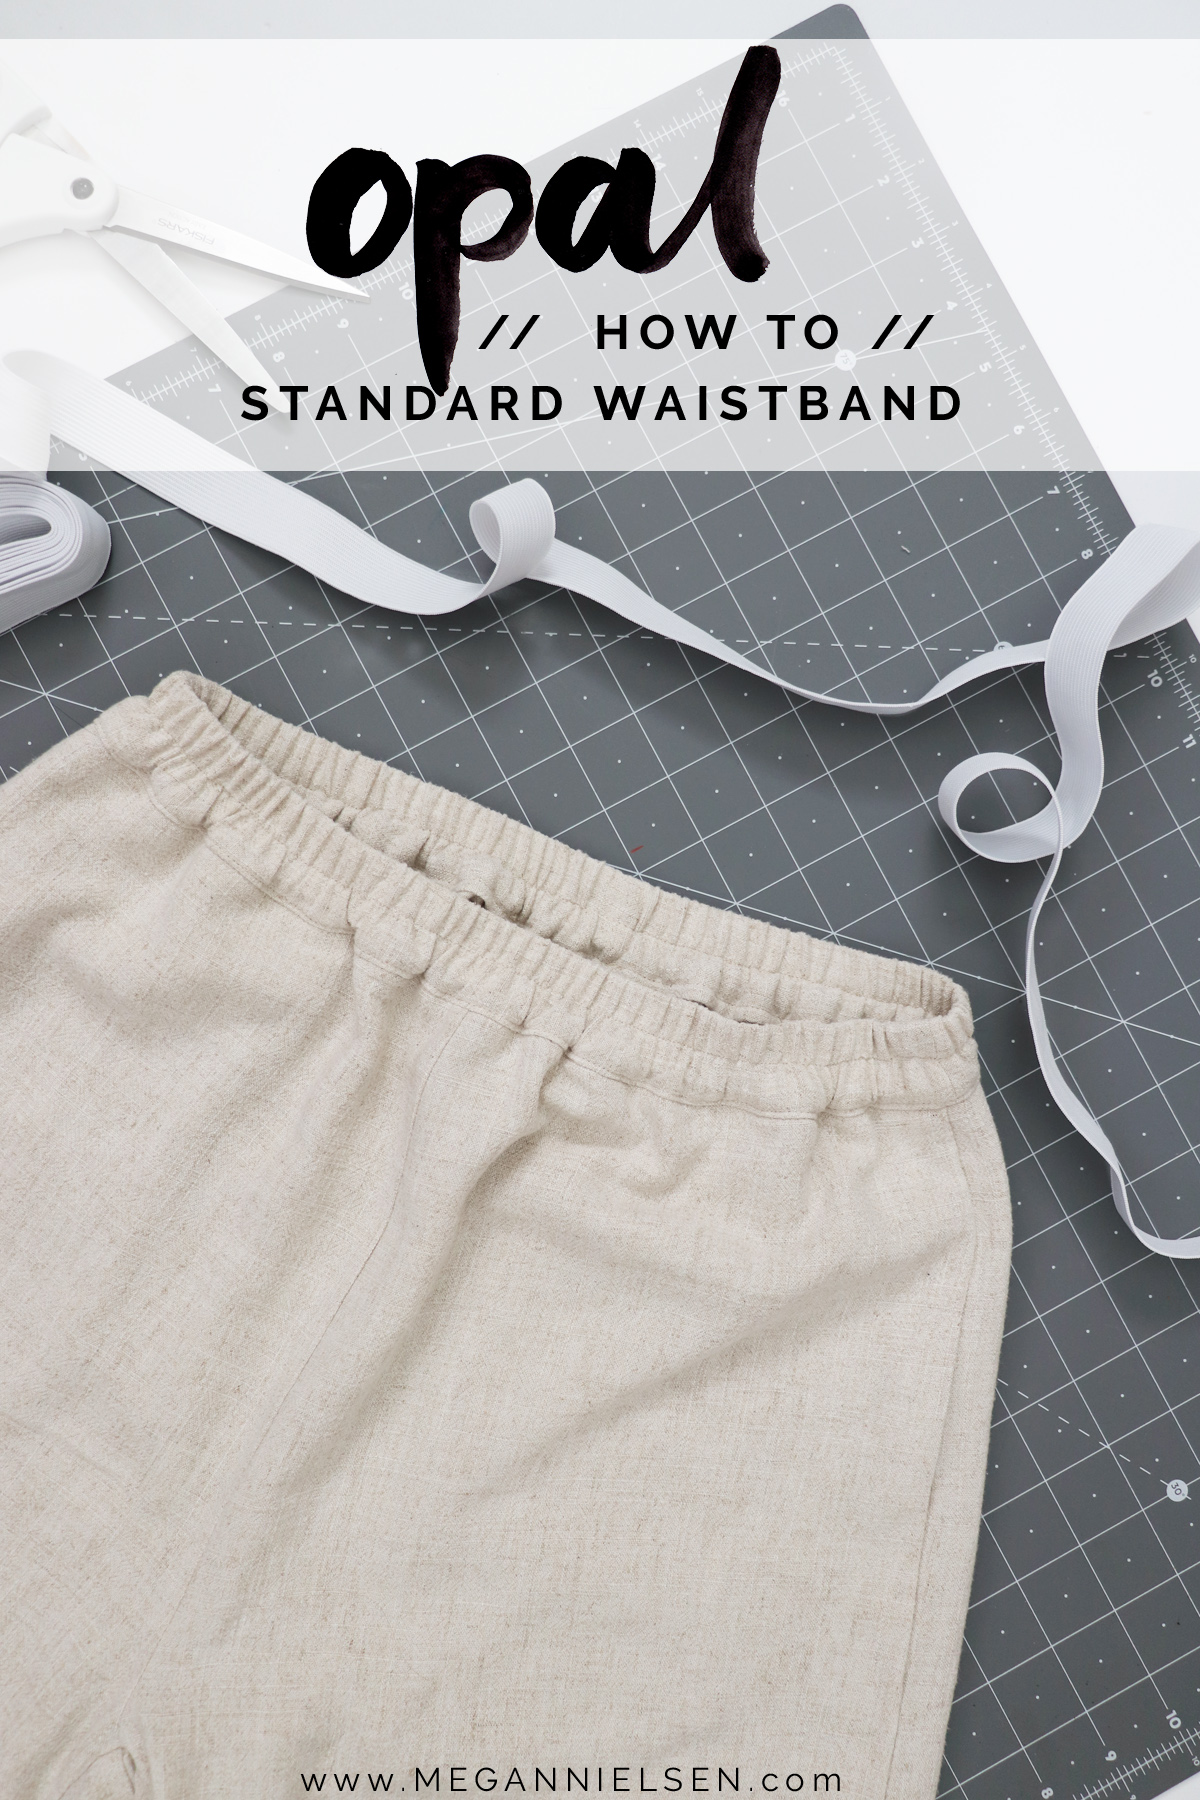 Opal Pants And Shorts - How To Sew The Standard Waistband For View B & D